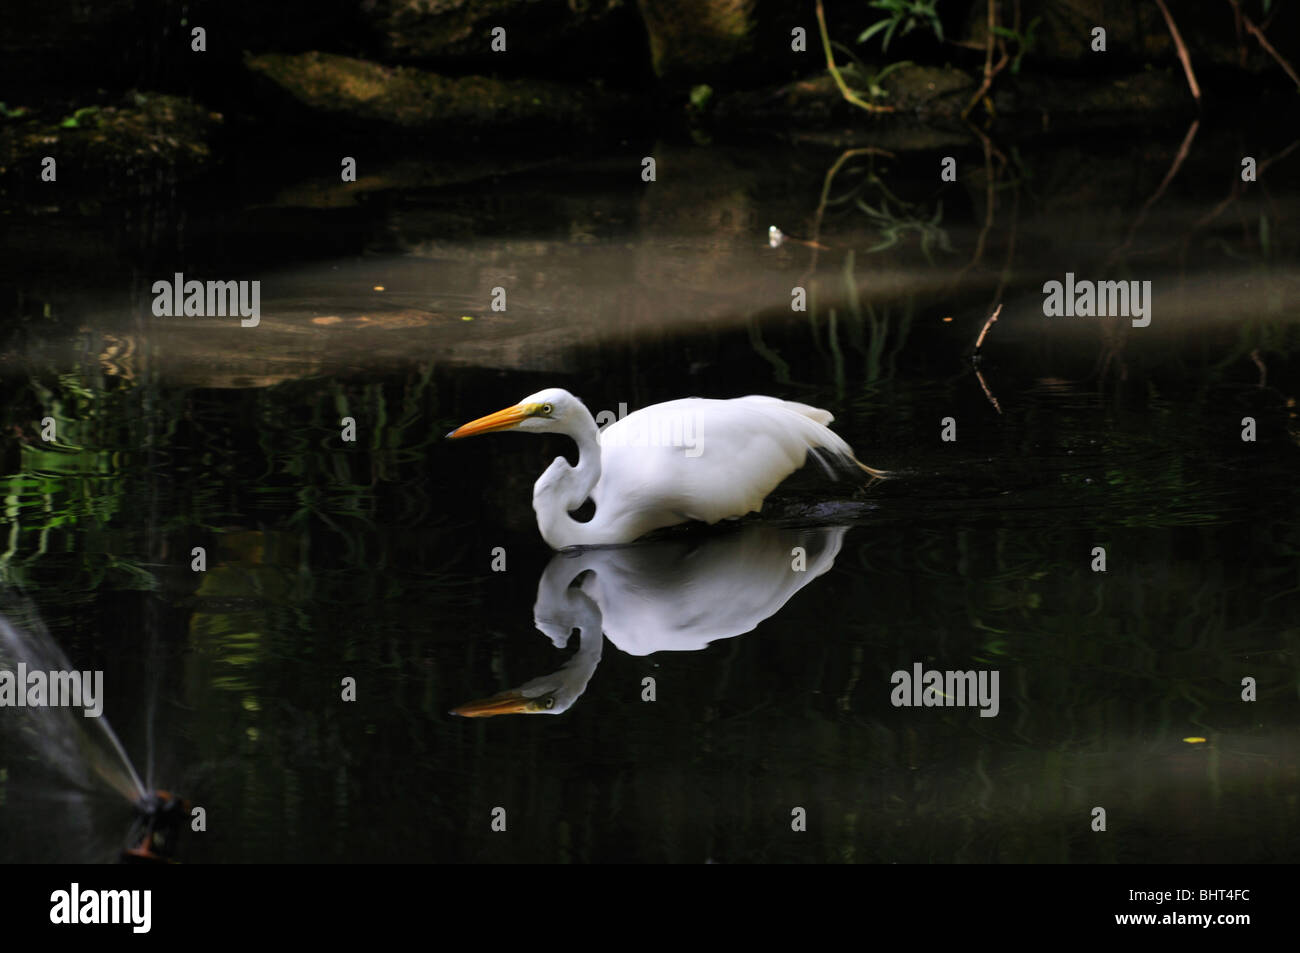 A great egret casting a clear reflection stealthily advances in a pond seeking prey - Stock Image